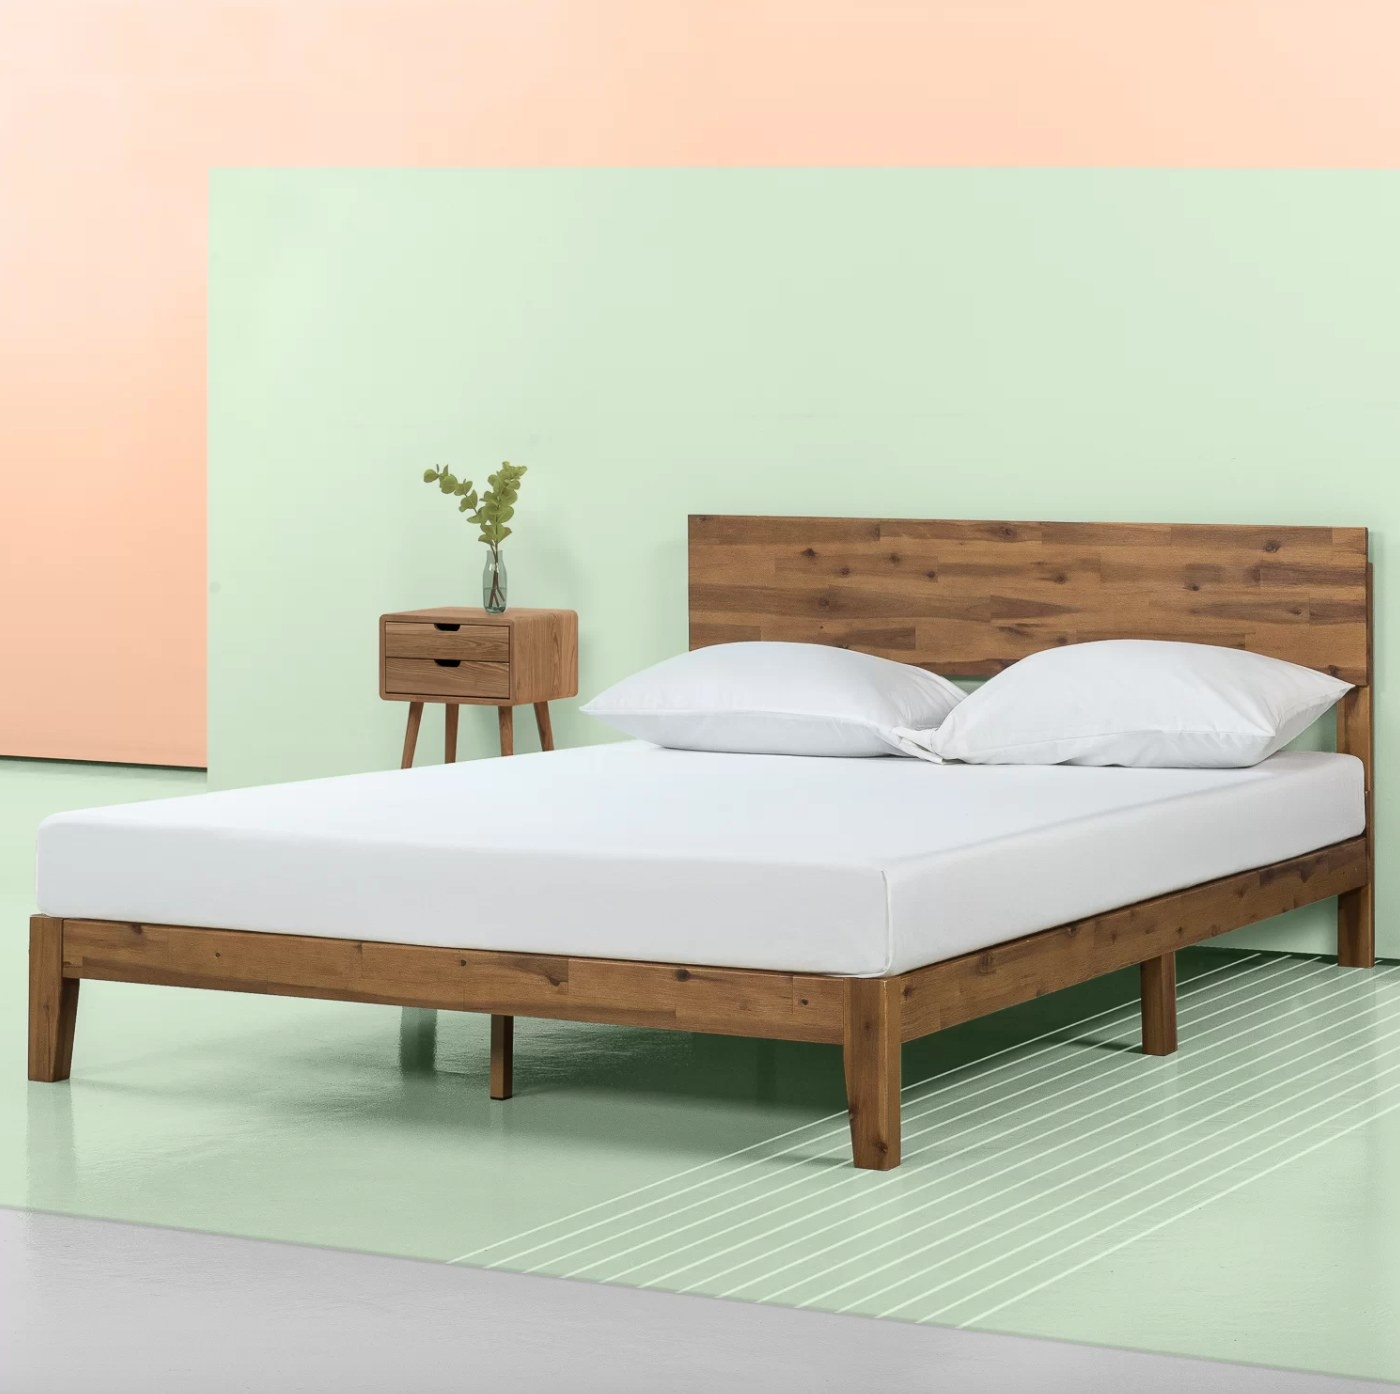 The low platform bed frame in wood